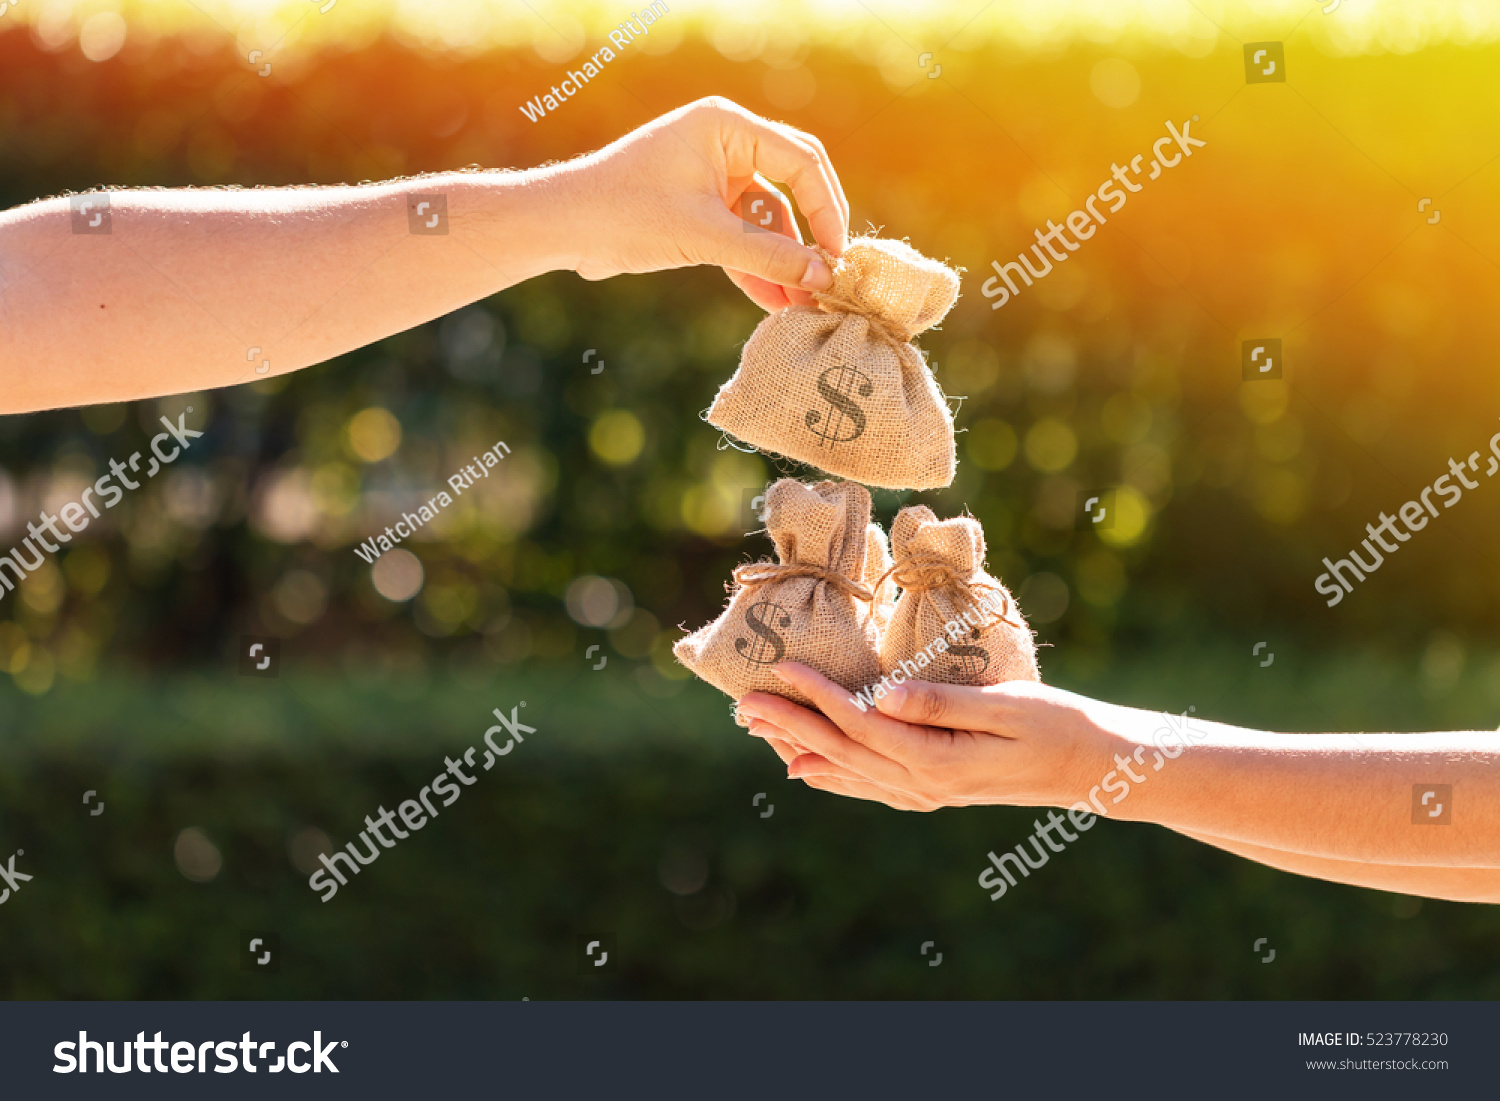 A man and a women hands hold a money bags in the public park for loans to planned investment in the future concept. #523778230